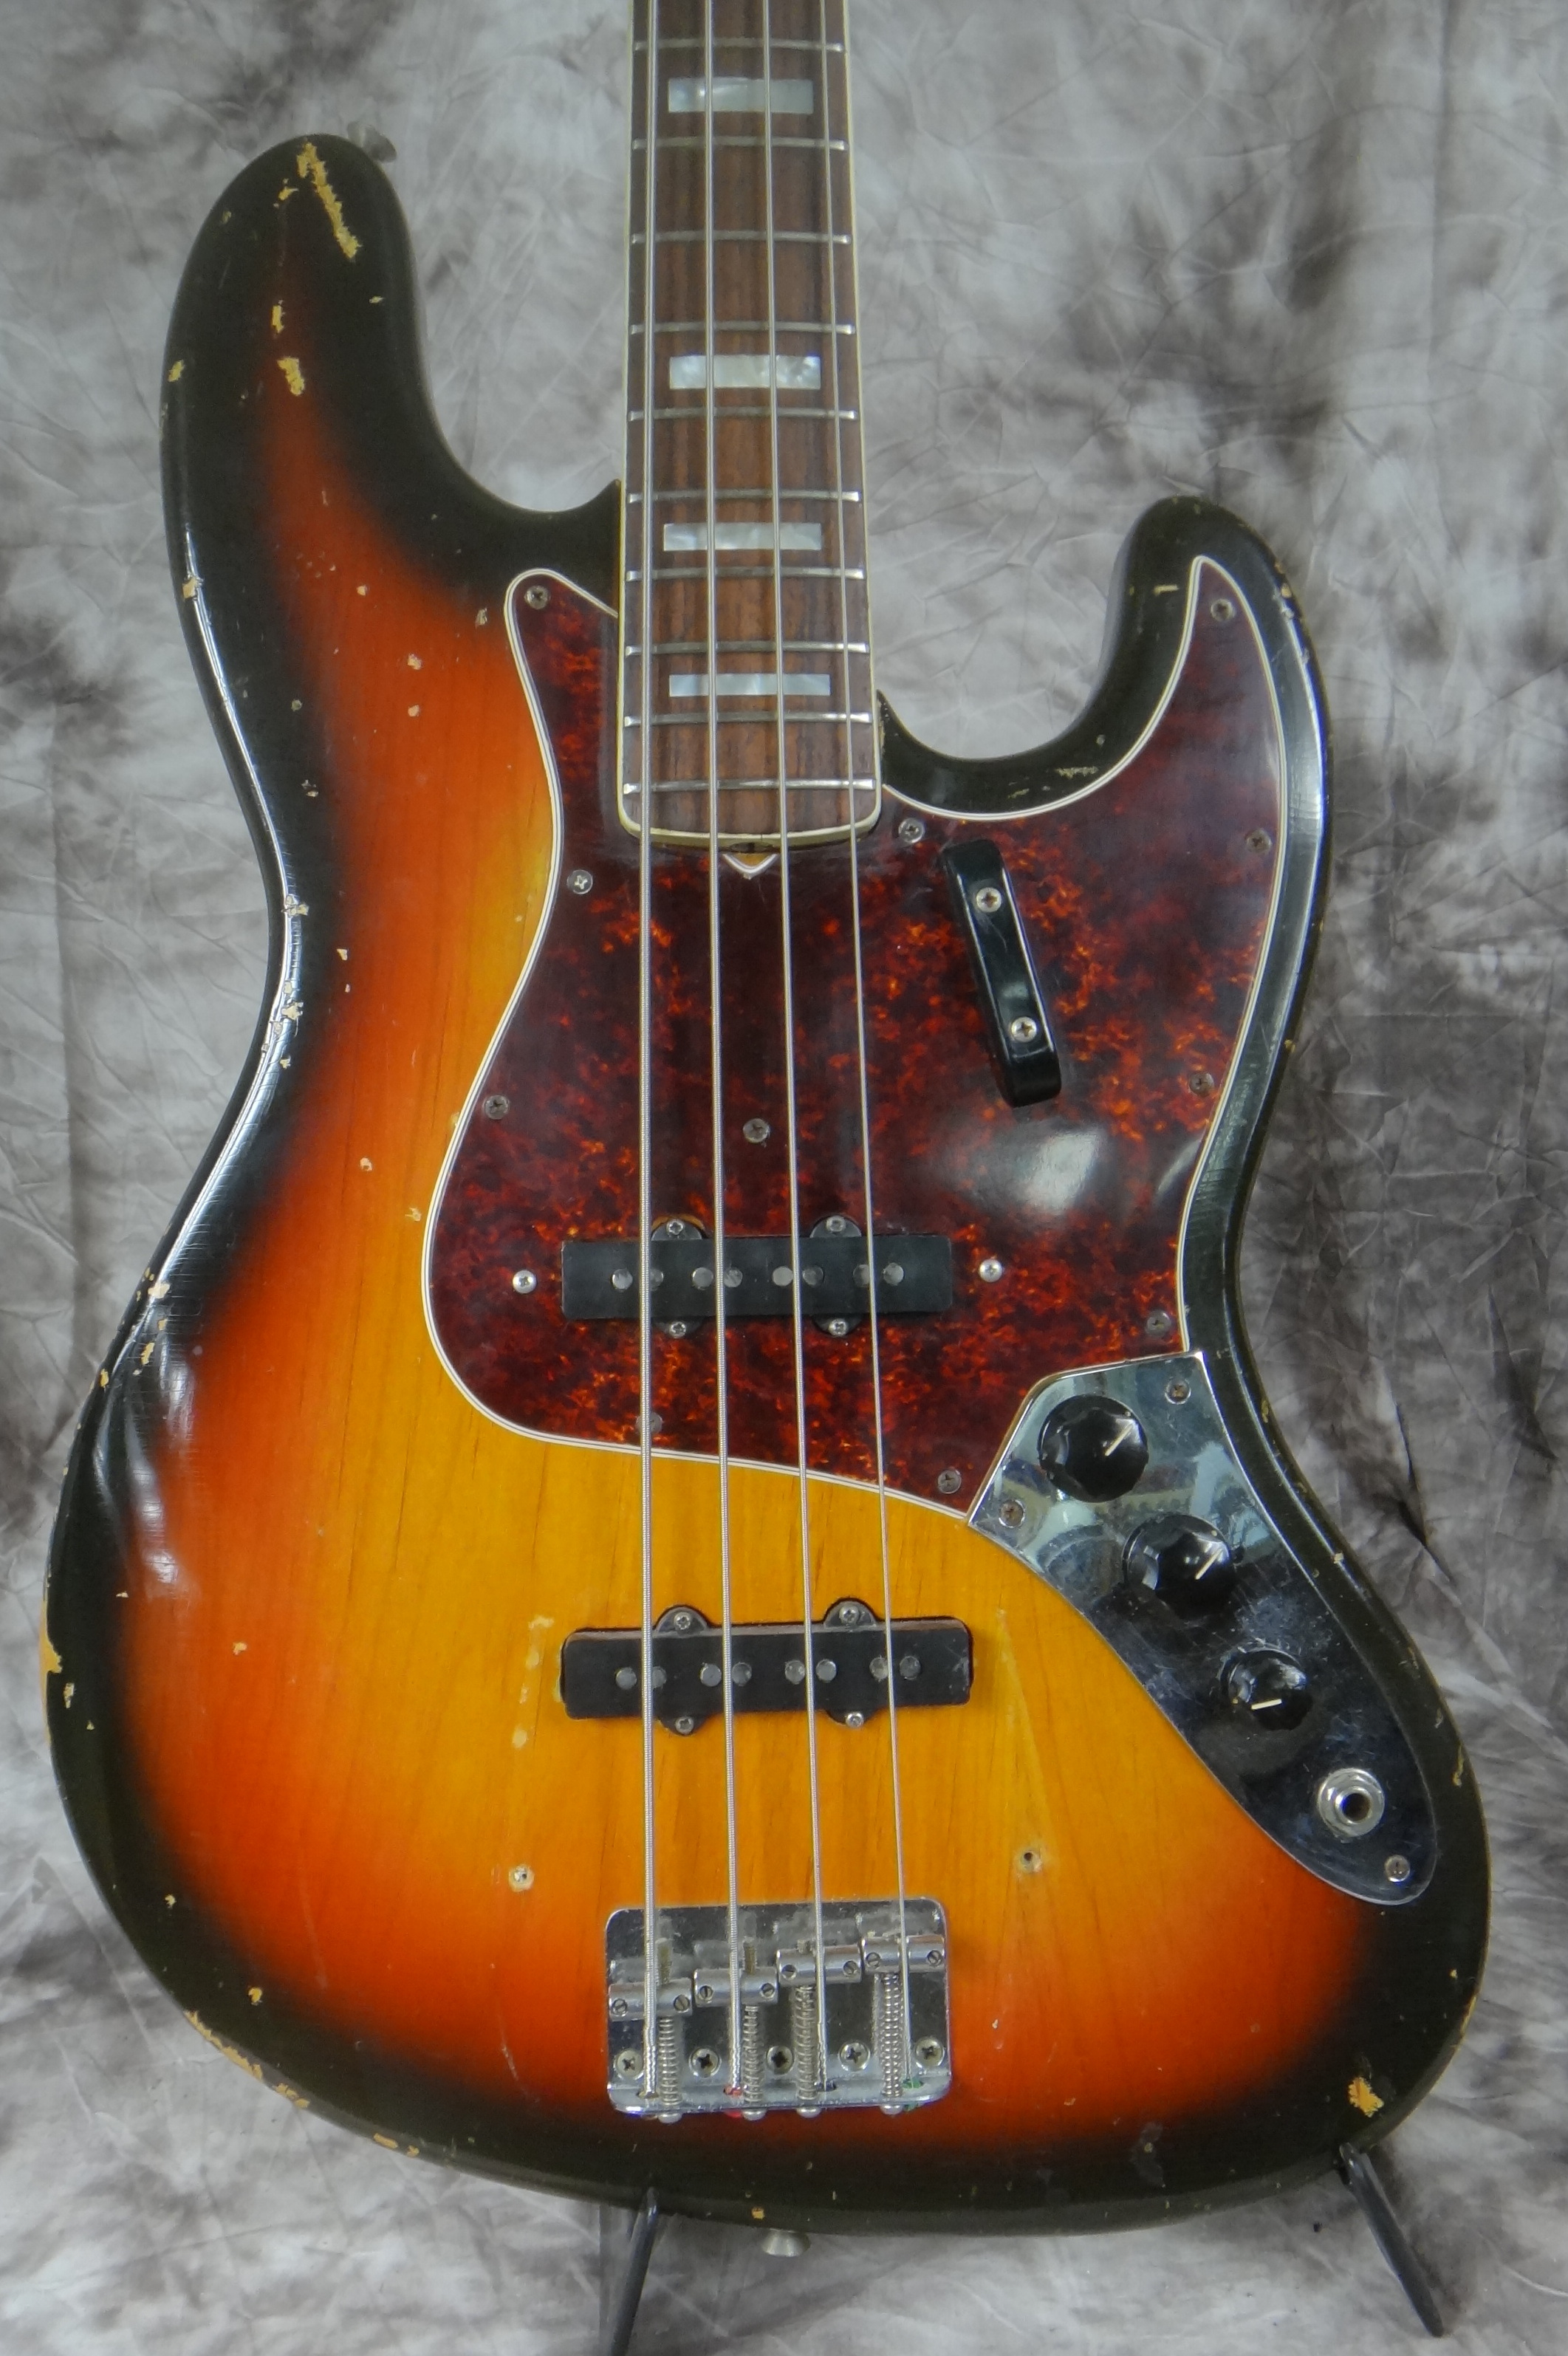 FENDER Jazz Bass [1968] | A-1193